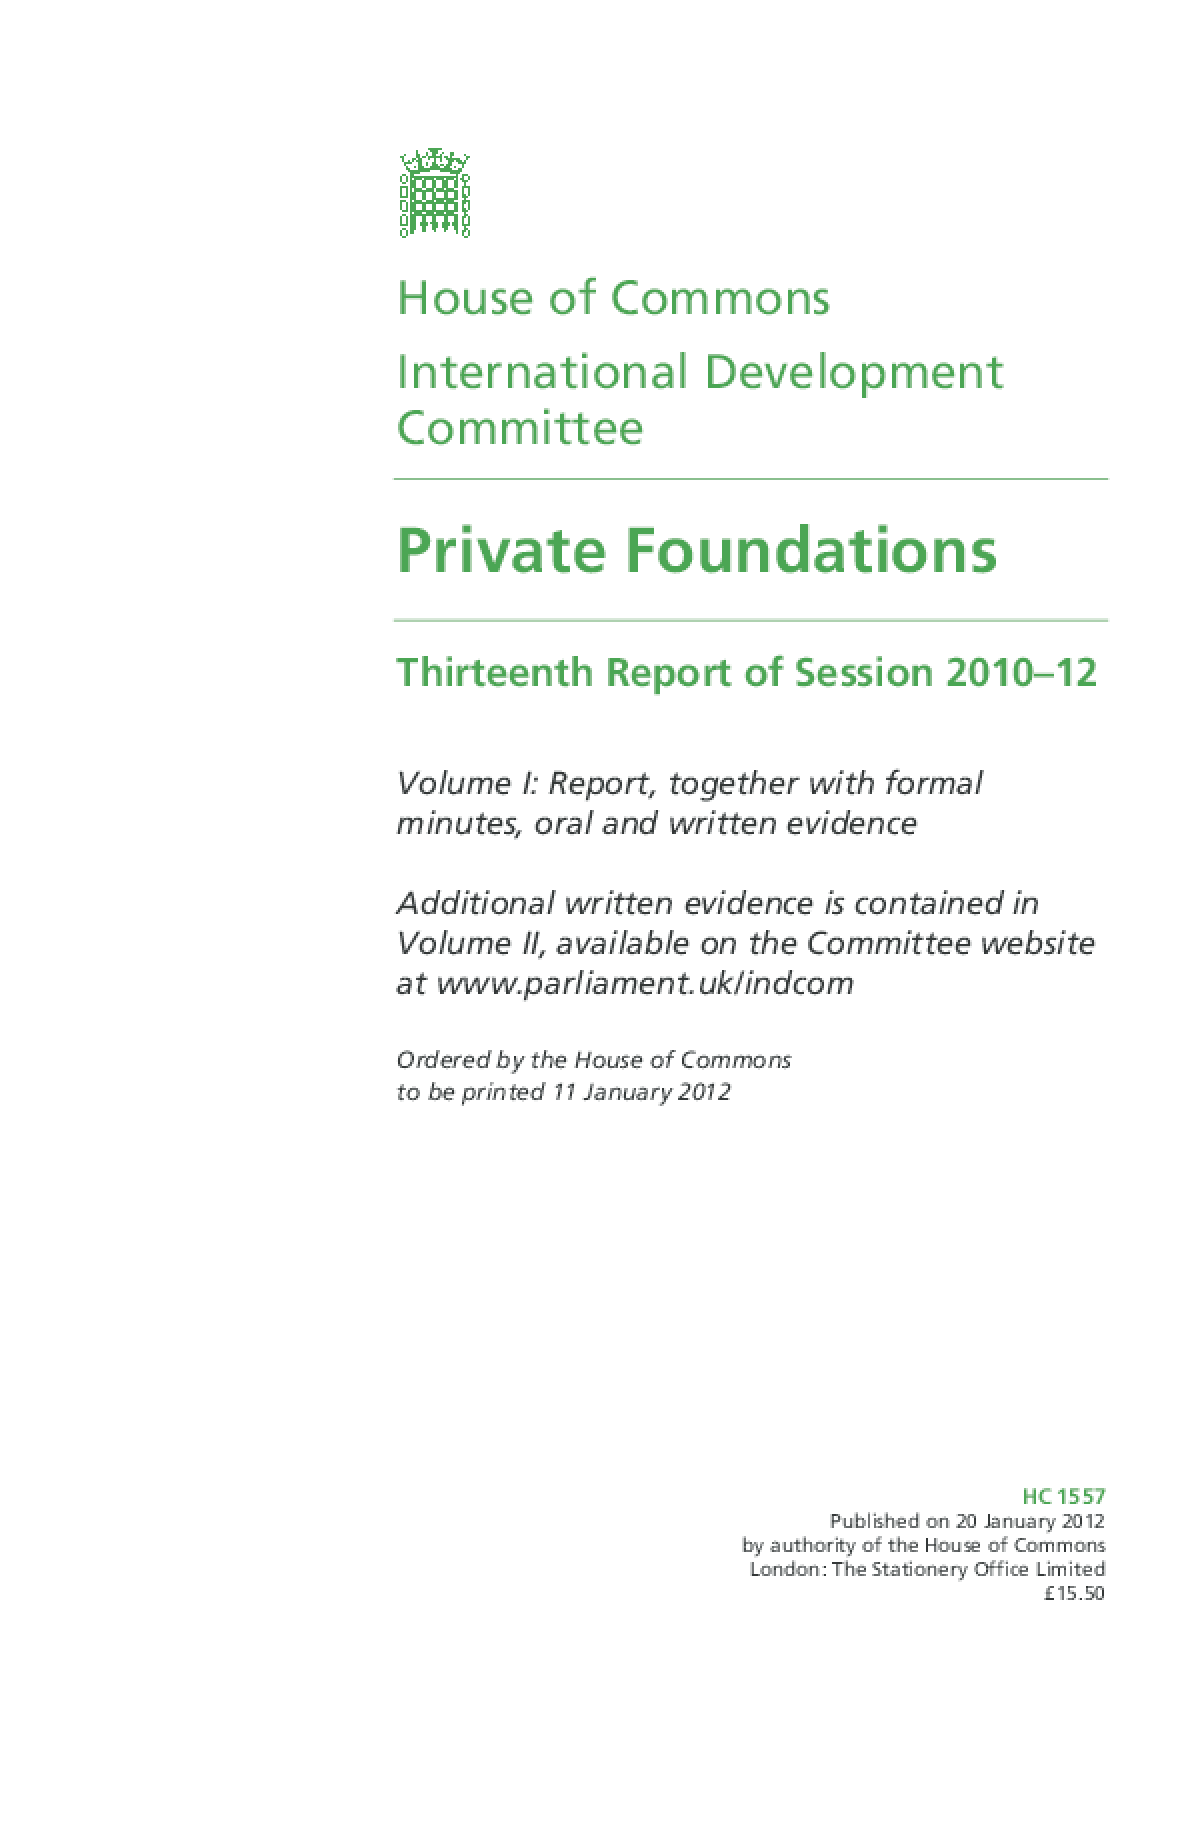 House of Commons: International Development Committee: Private Foundations: Thirteenth Report of Session 2010-12